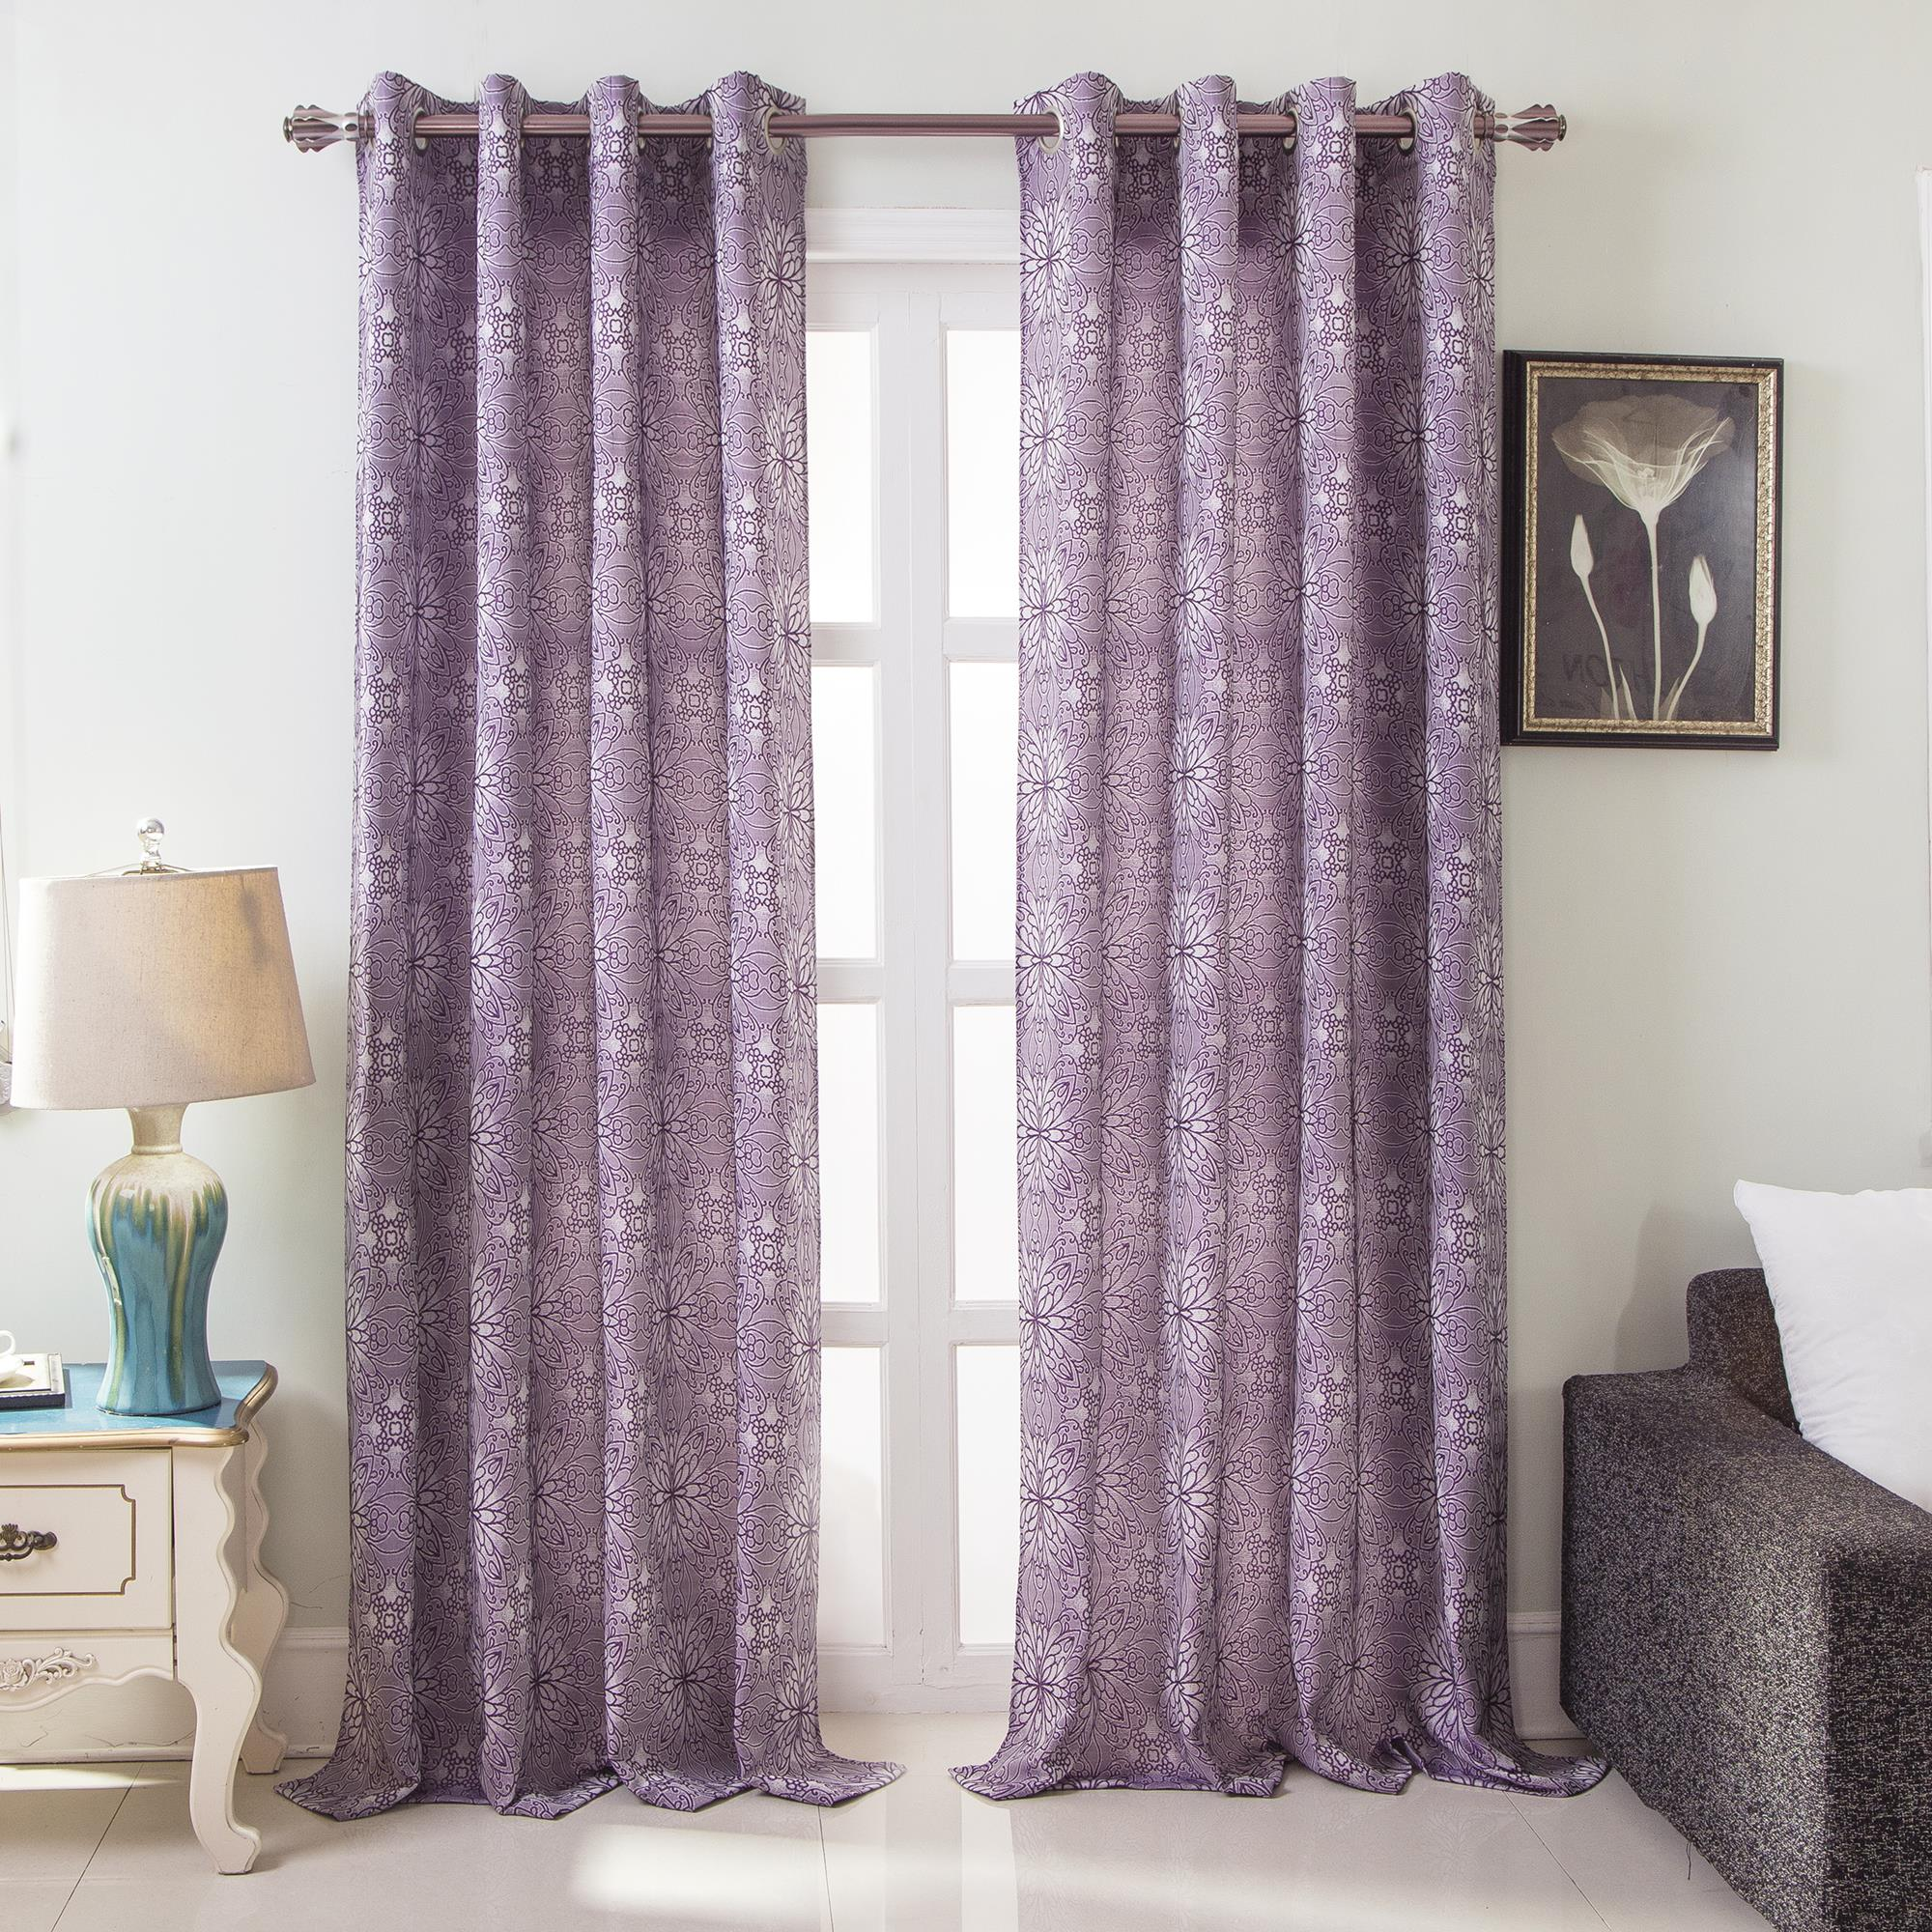 window sheers polka sxs dot uncategorized astonishing pocket rod and of curtain pic curtains eclipse concept single panel kids trends